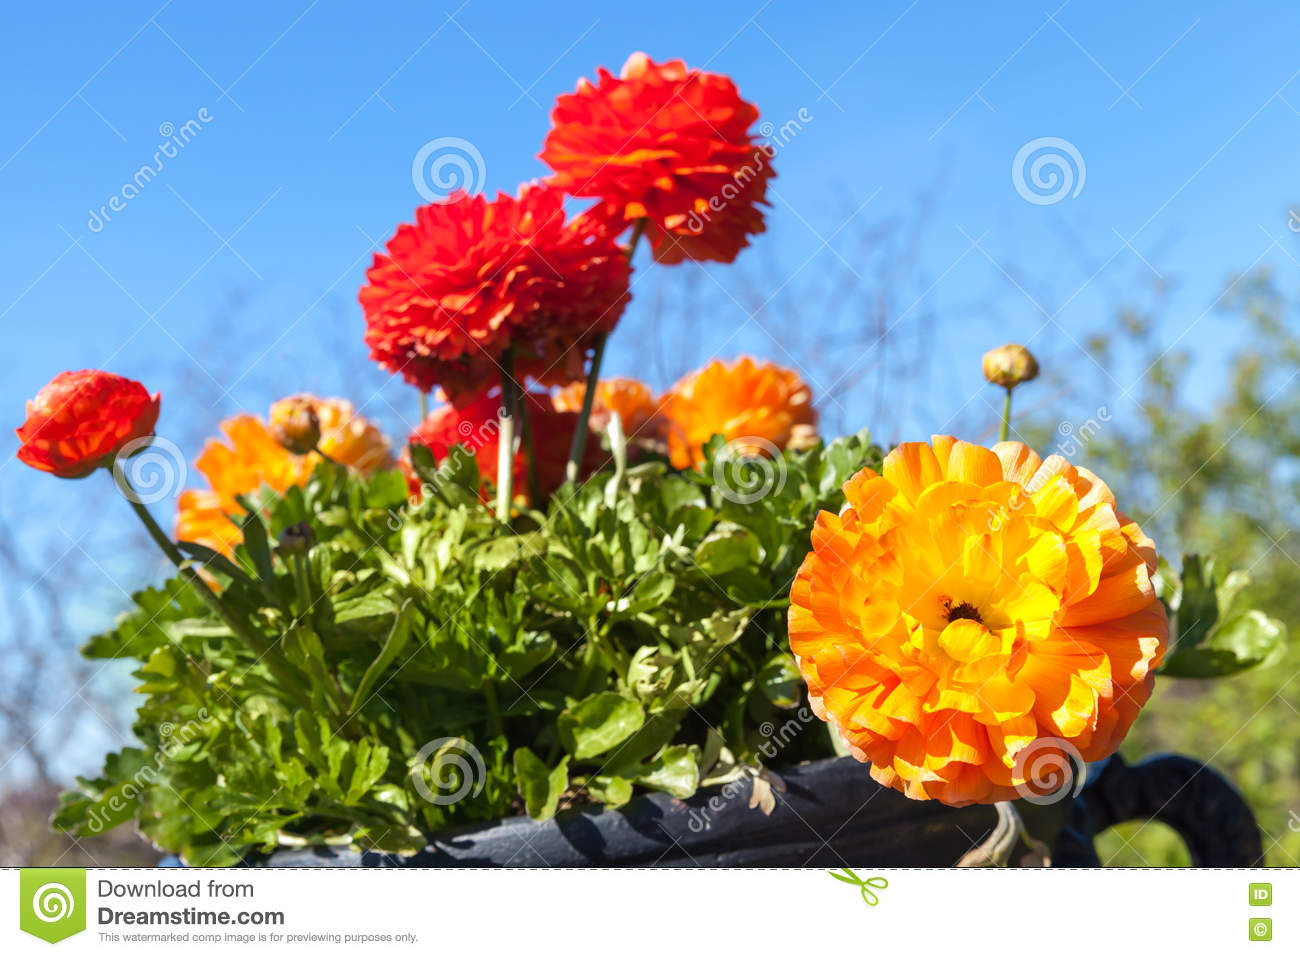 Bright Red And Yellow Peony Flowers Stock Photo Image Of Blossom